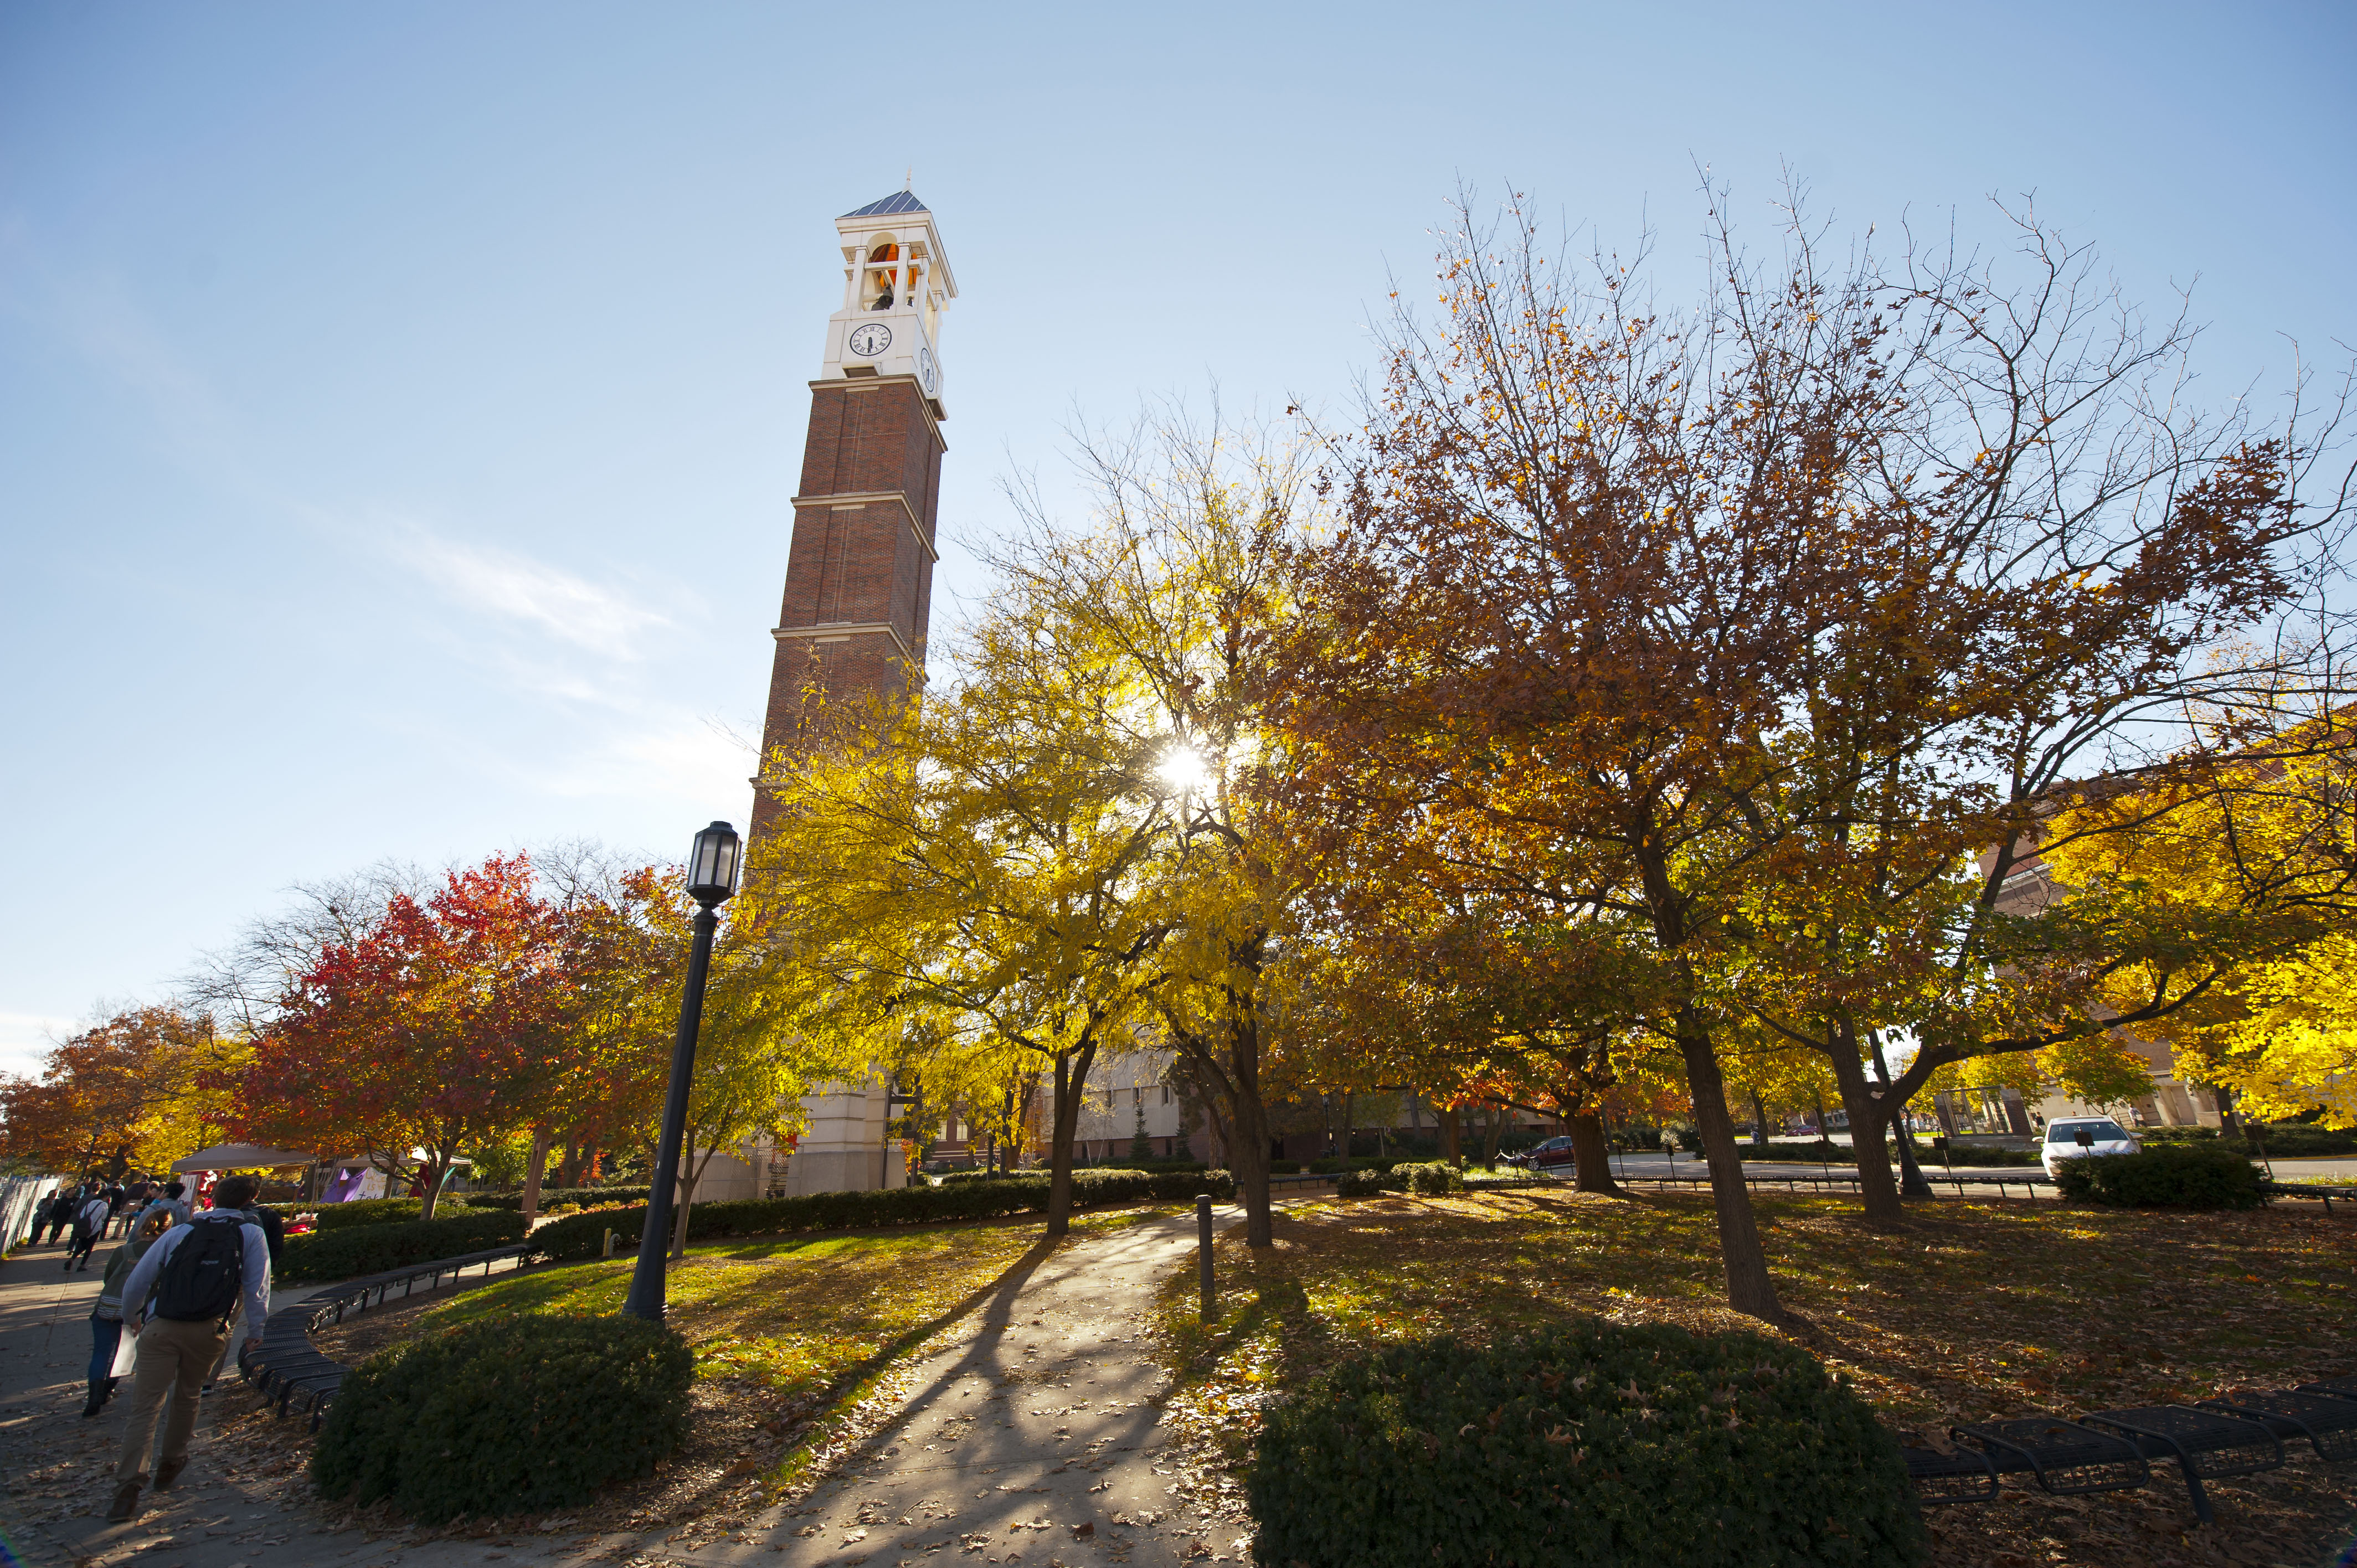 Purdue campus in the fall